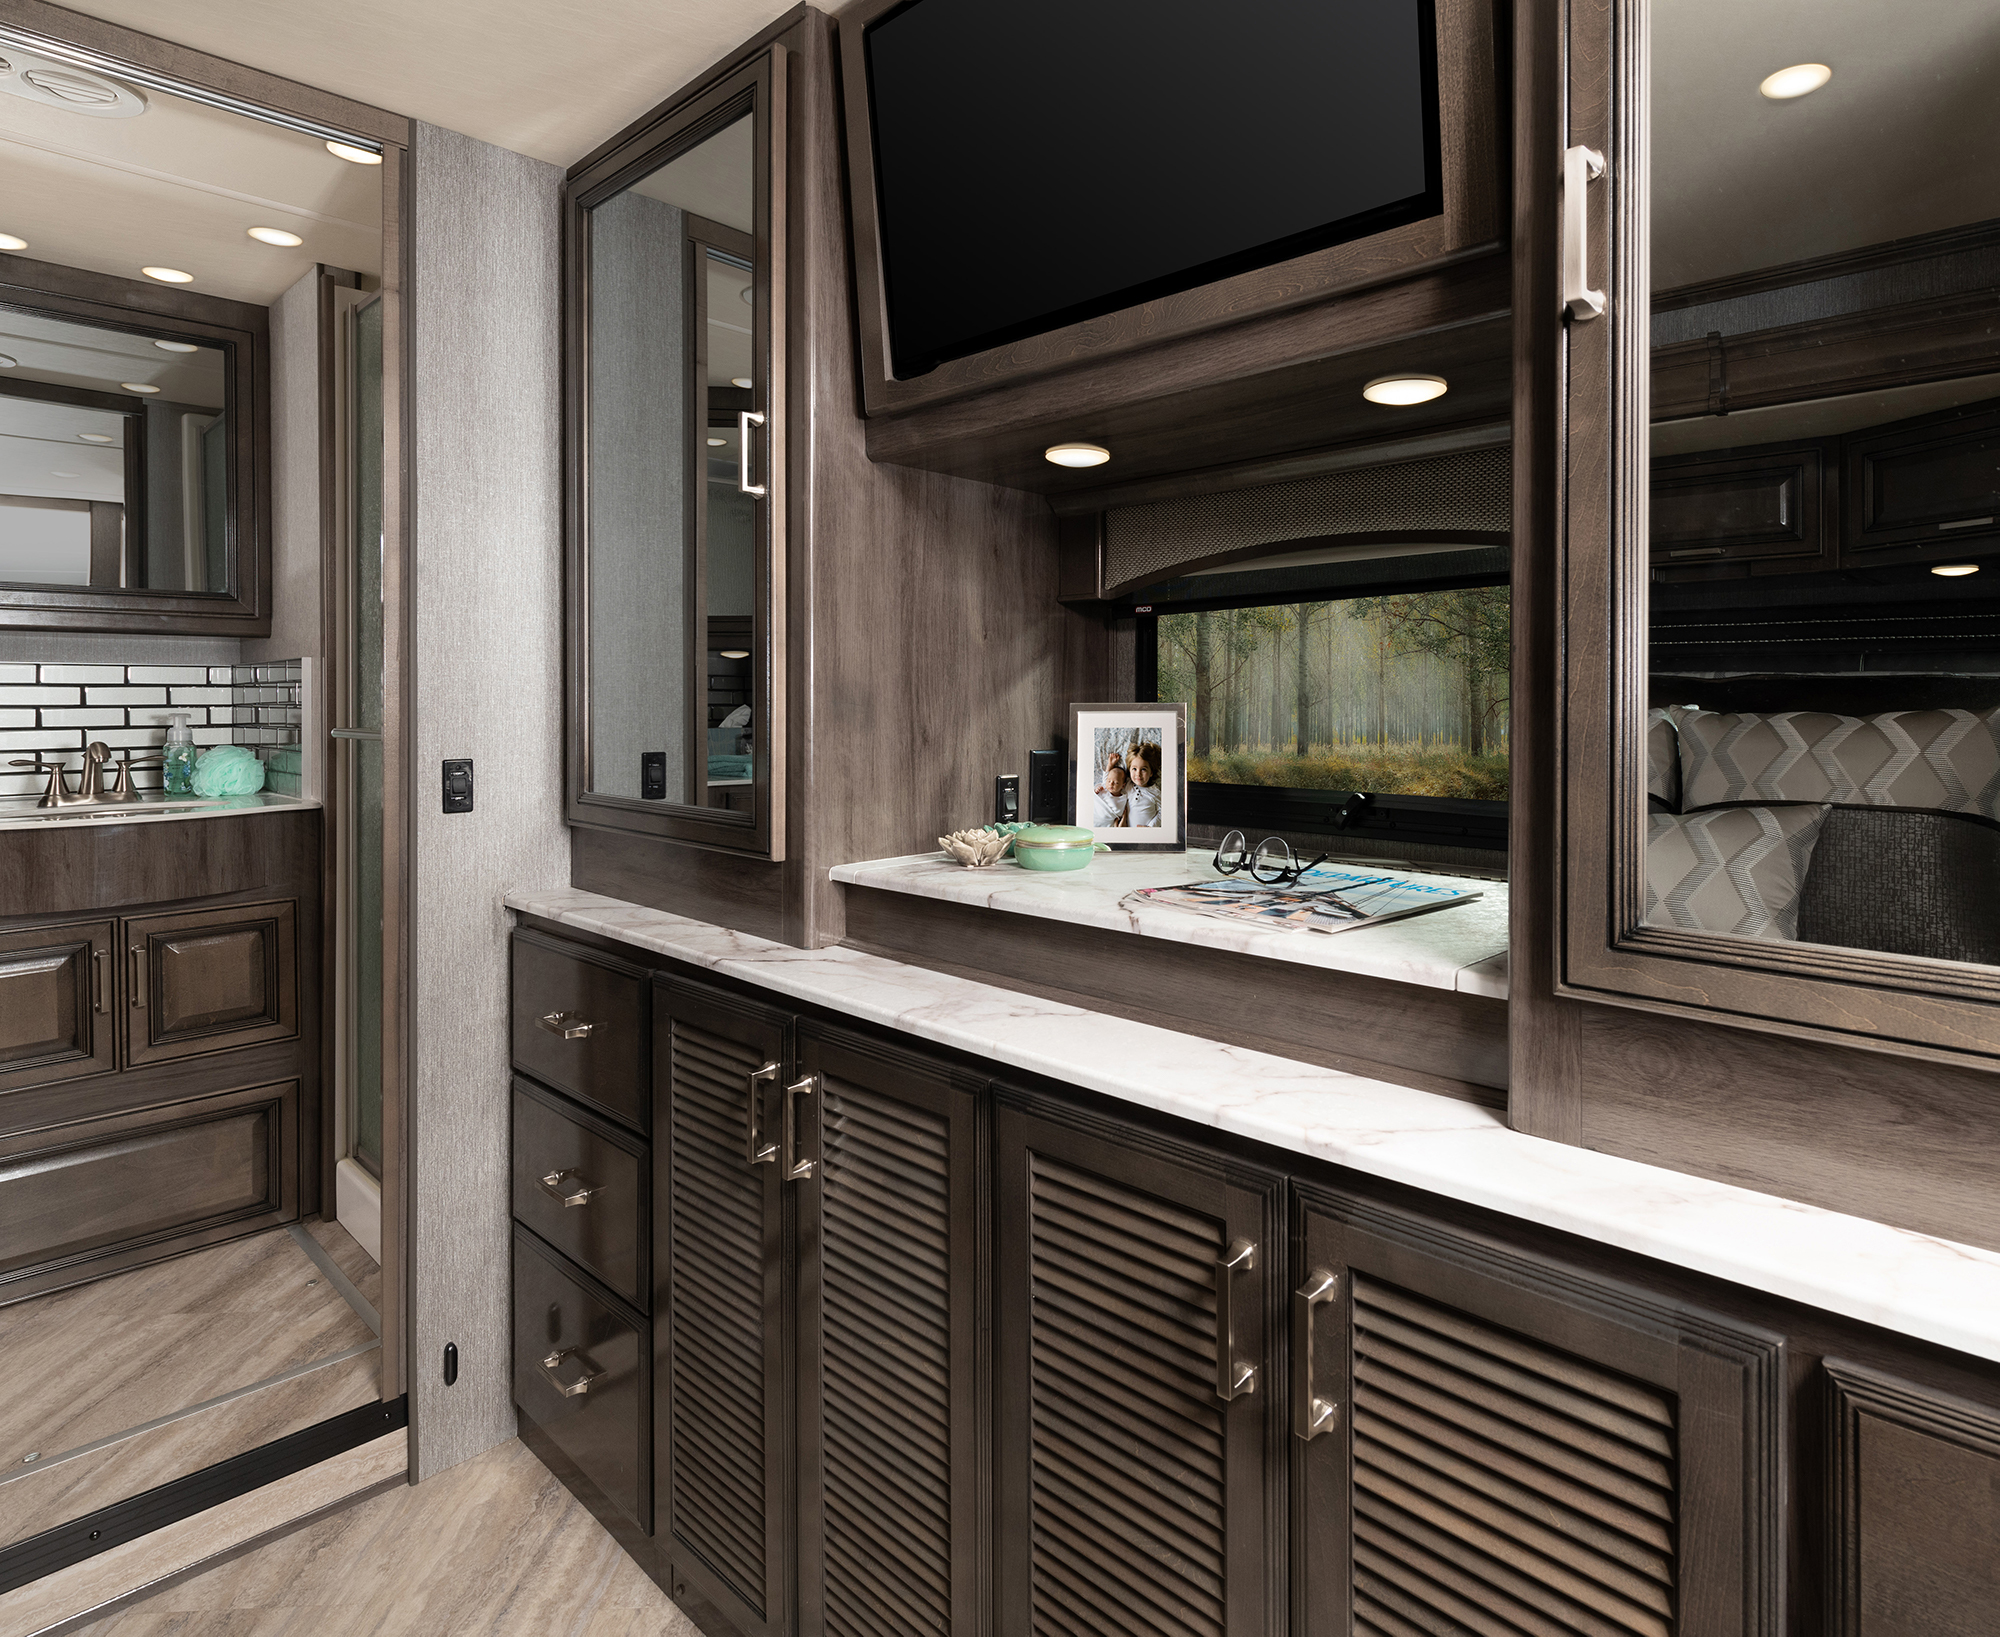 Pace Arrow 36U Alloy Decor with Greystone Cabinetry